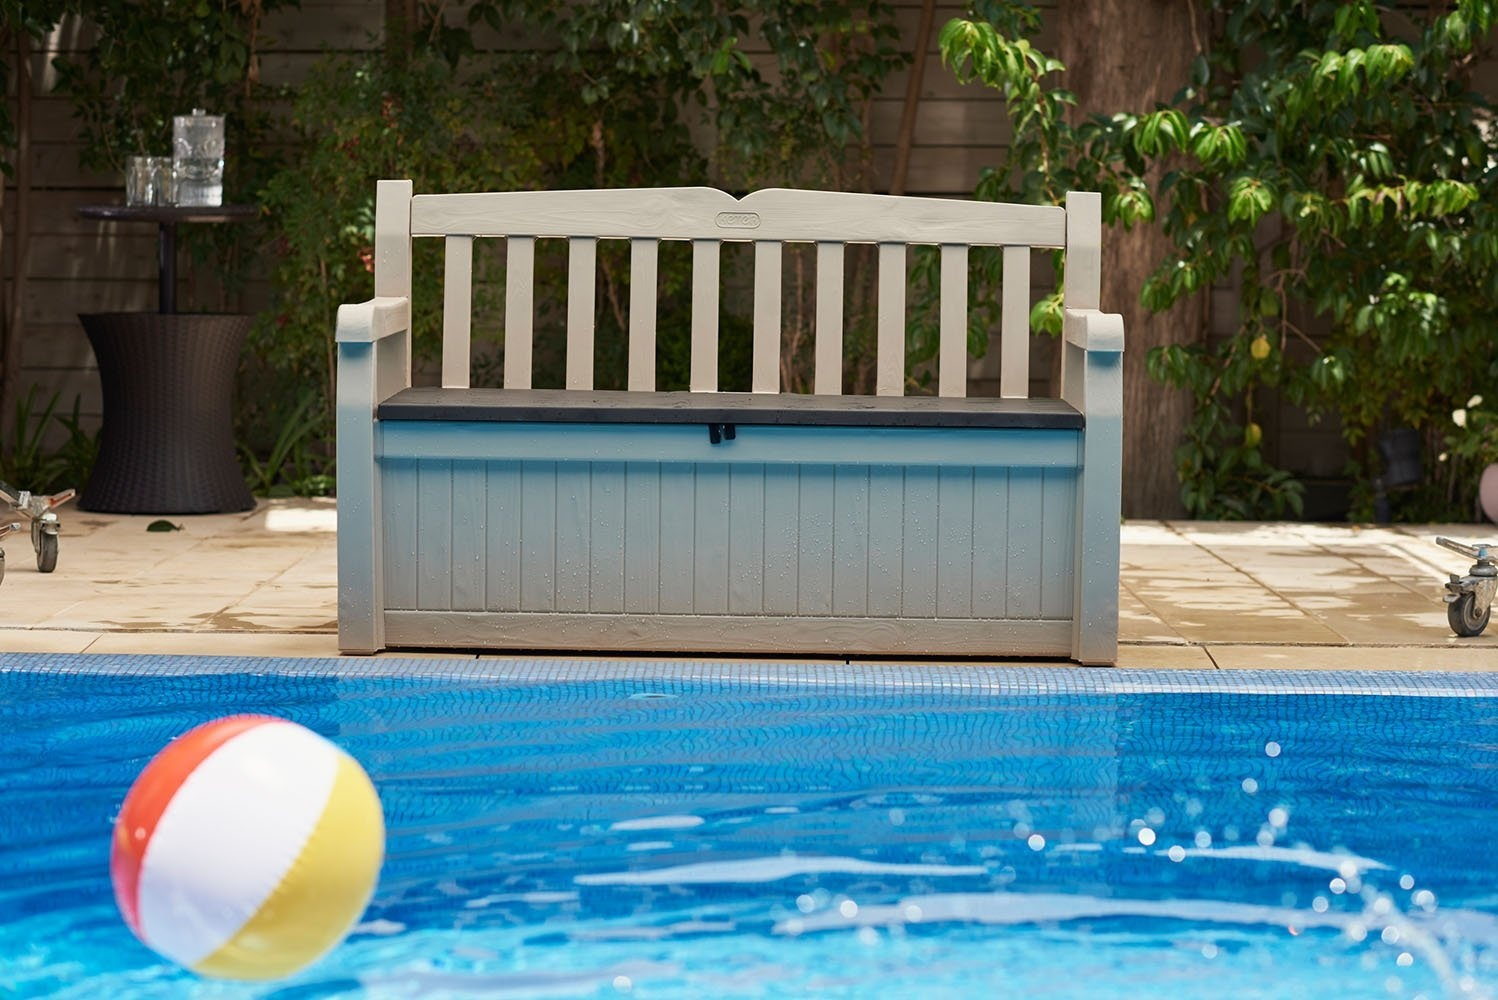 Jumbo Pool Pflege Keter Eden 265lall Weather Outdoor Patio Storage Bench Deck Box Beige Brown